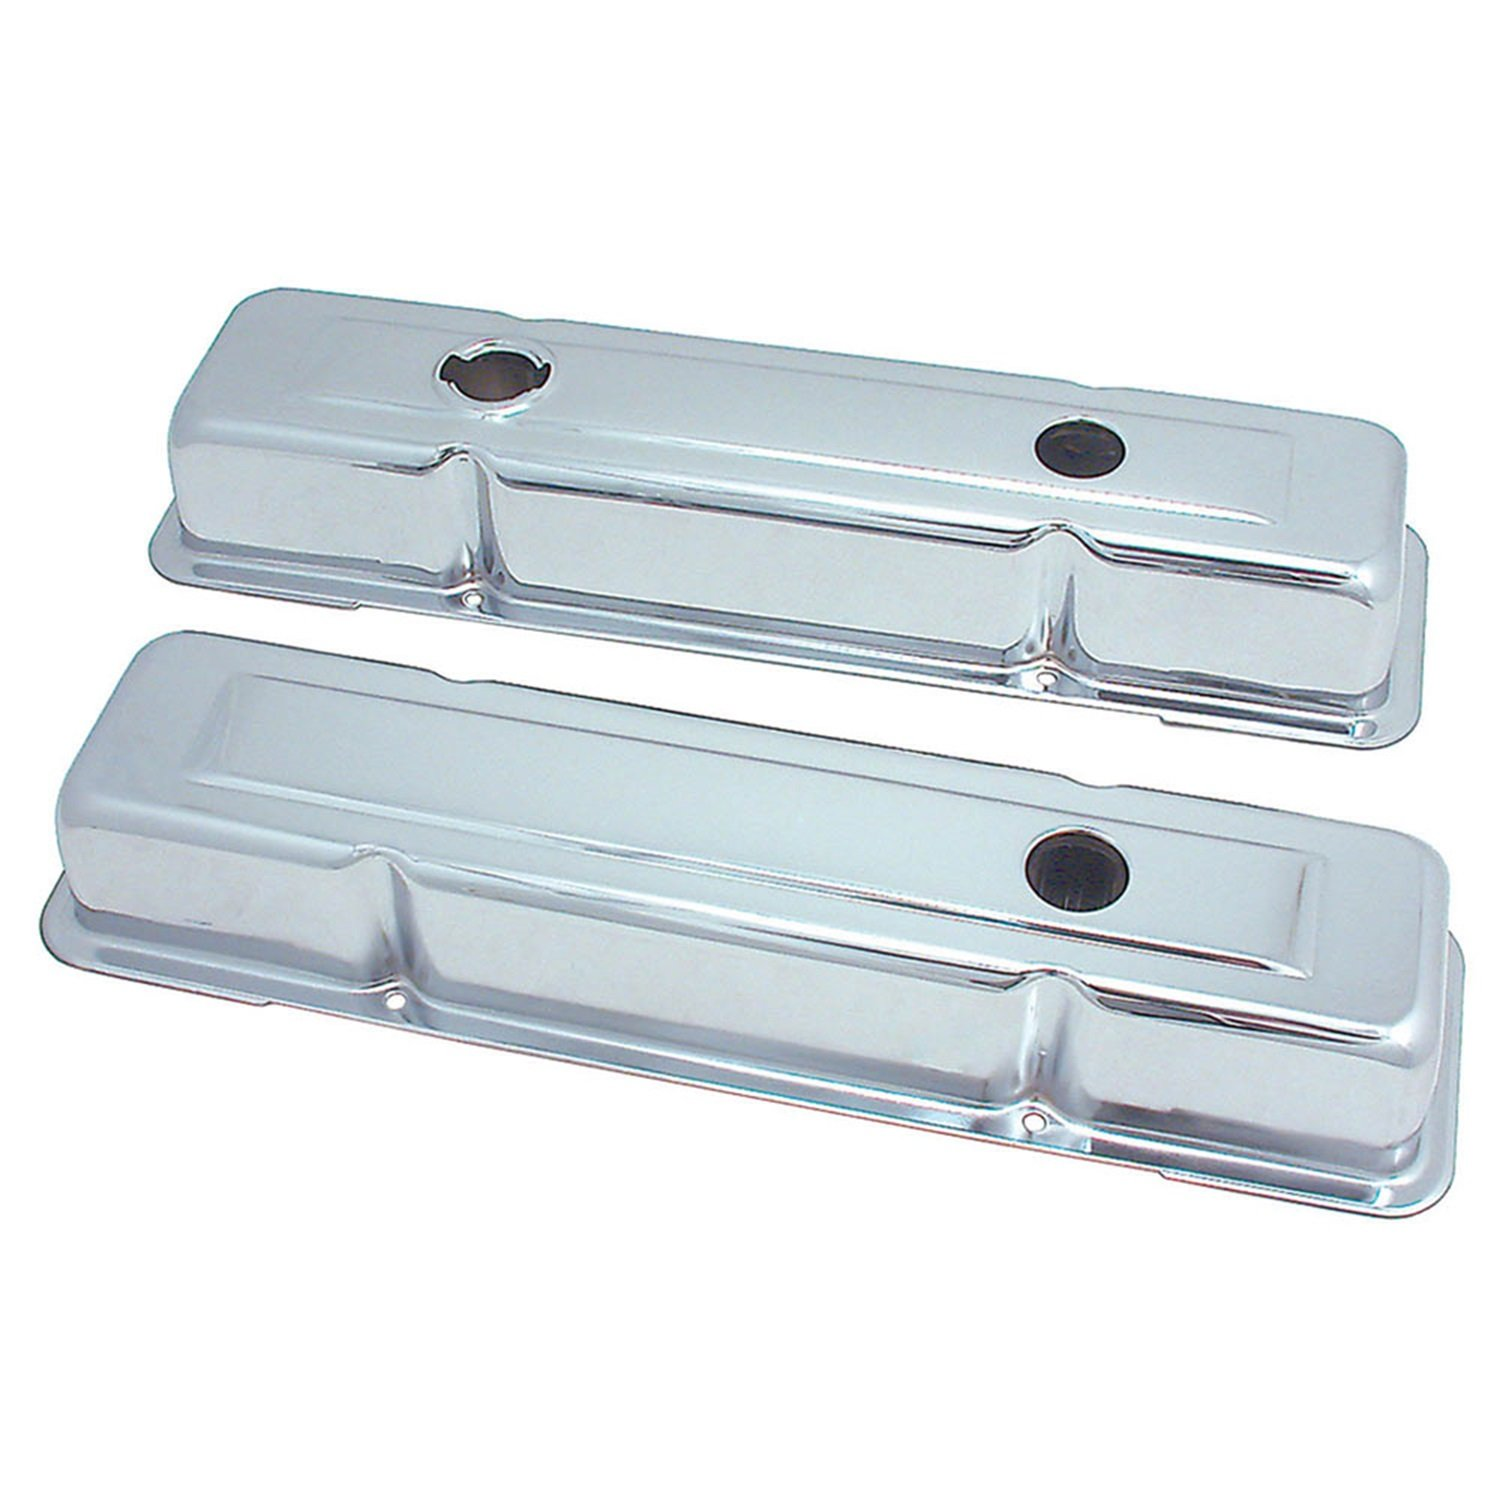 Spectre Performance 5258 Valve Cover for Small Block Chevy